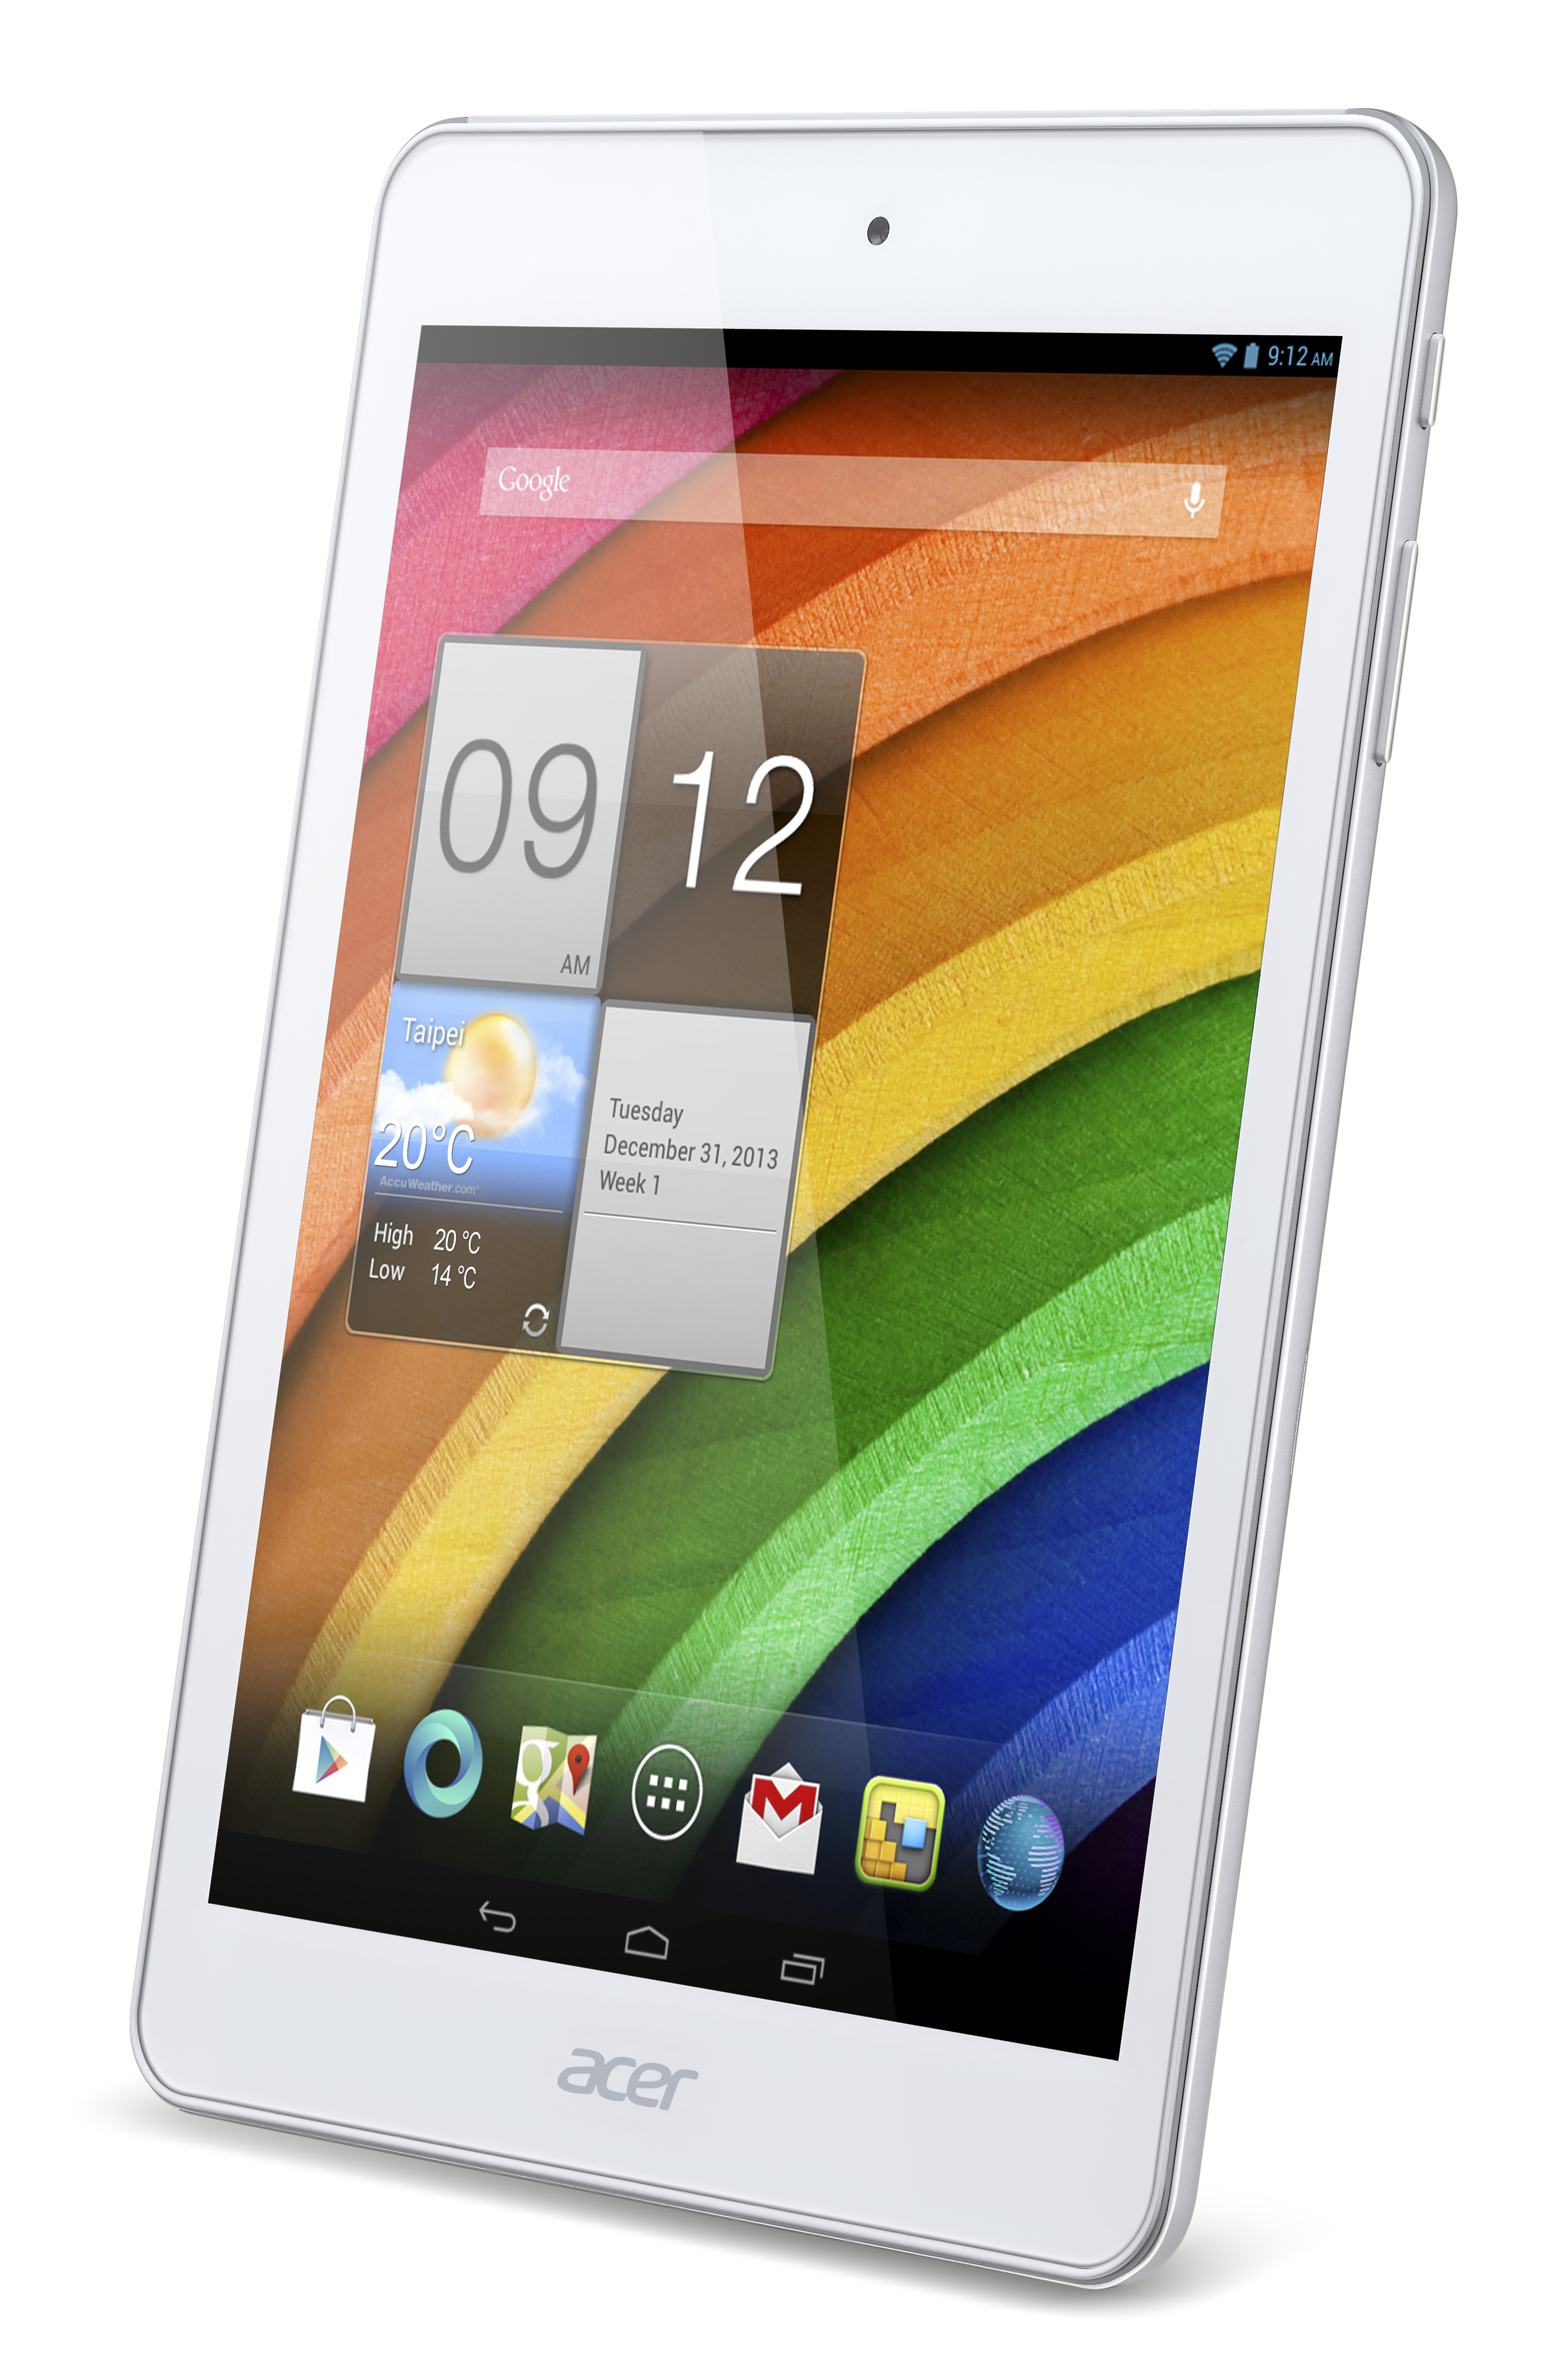 Acer Iconia A1-830 left angle